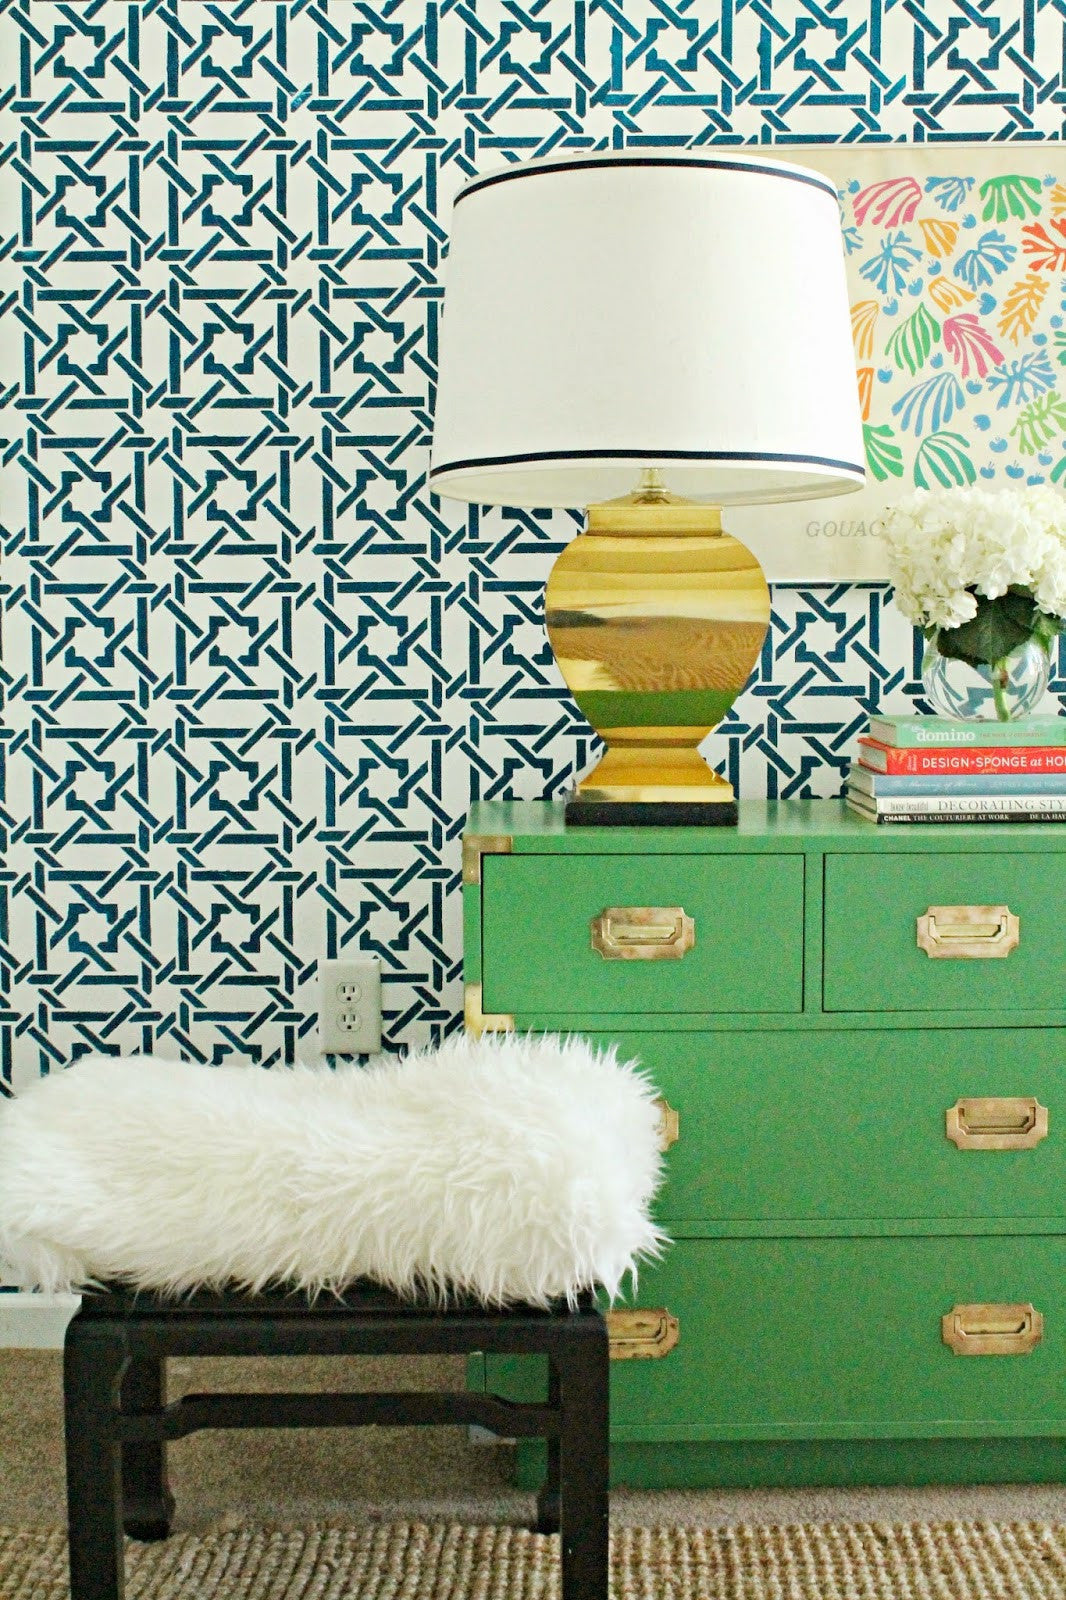 Geometric moroccan stencils diy floor stencils royal design decorate your home with moroccan stencils camel bone weave geometric and exotic pattern royal design amipublicfo Image collections